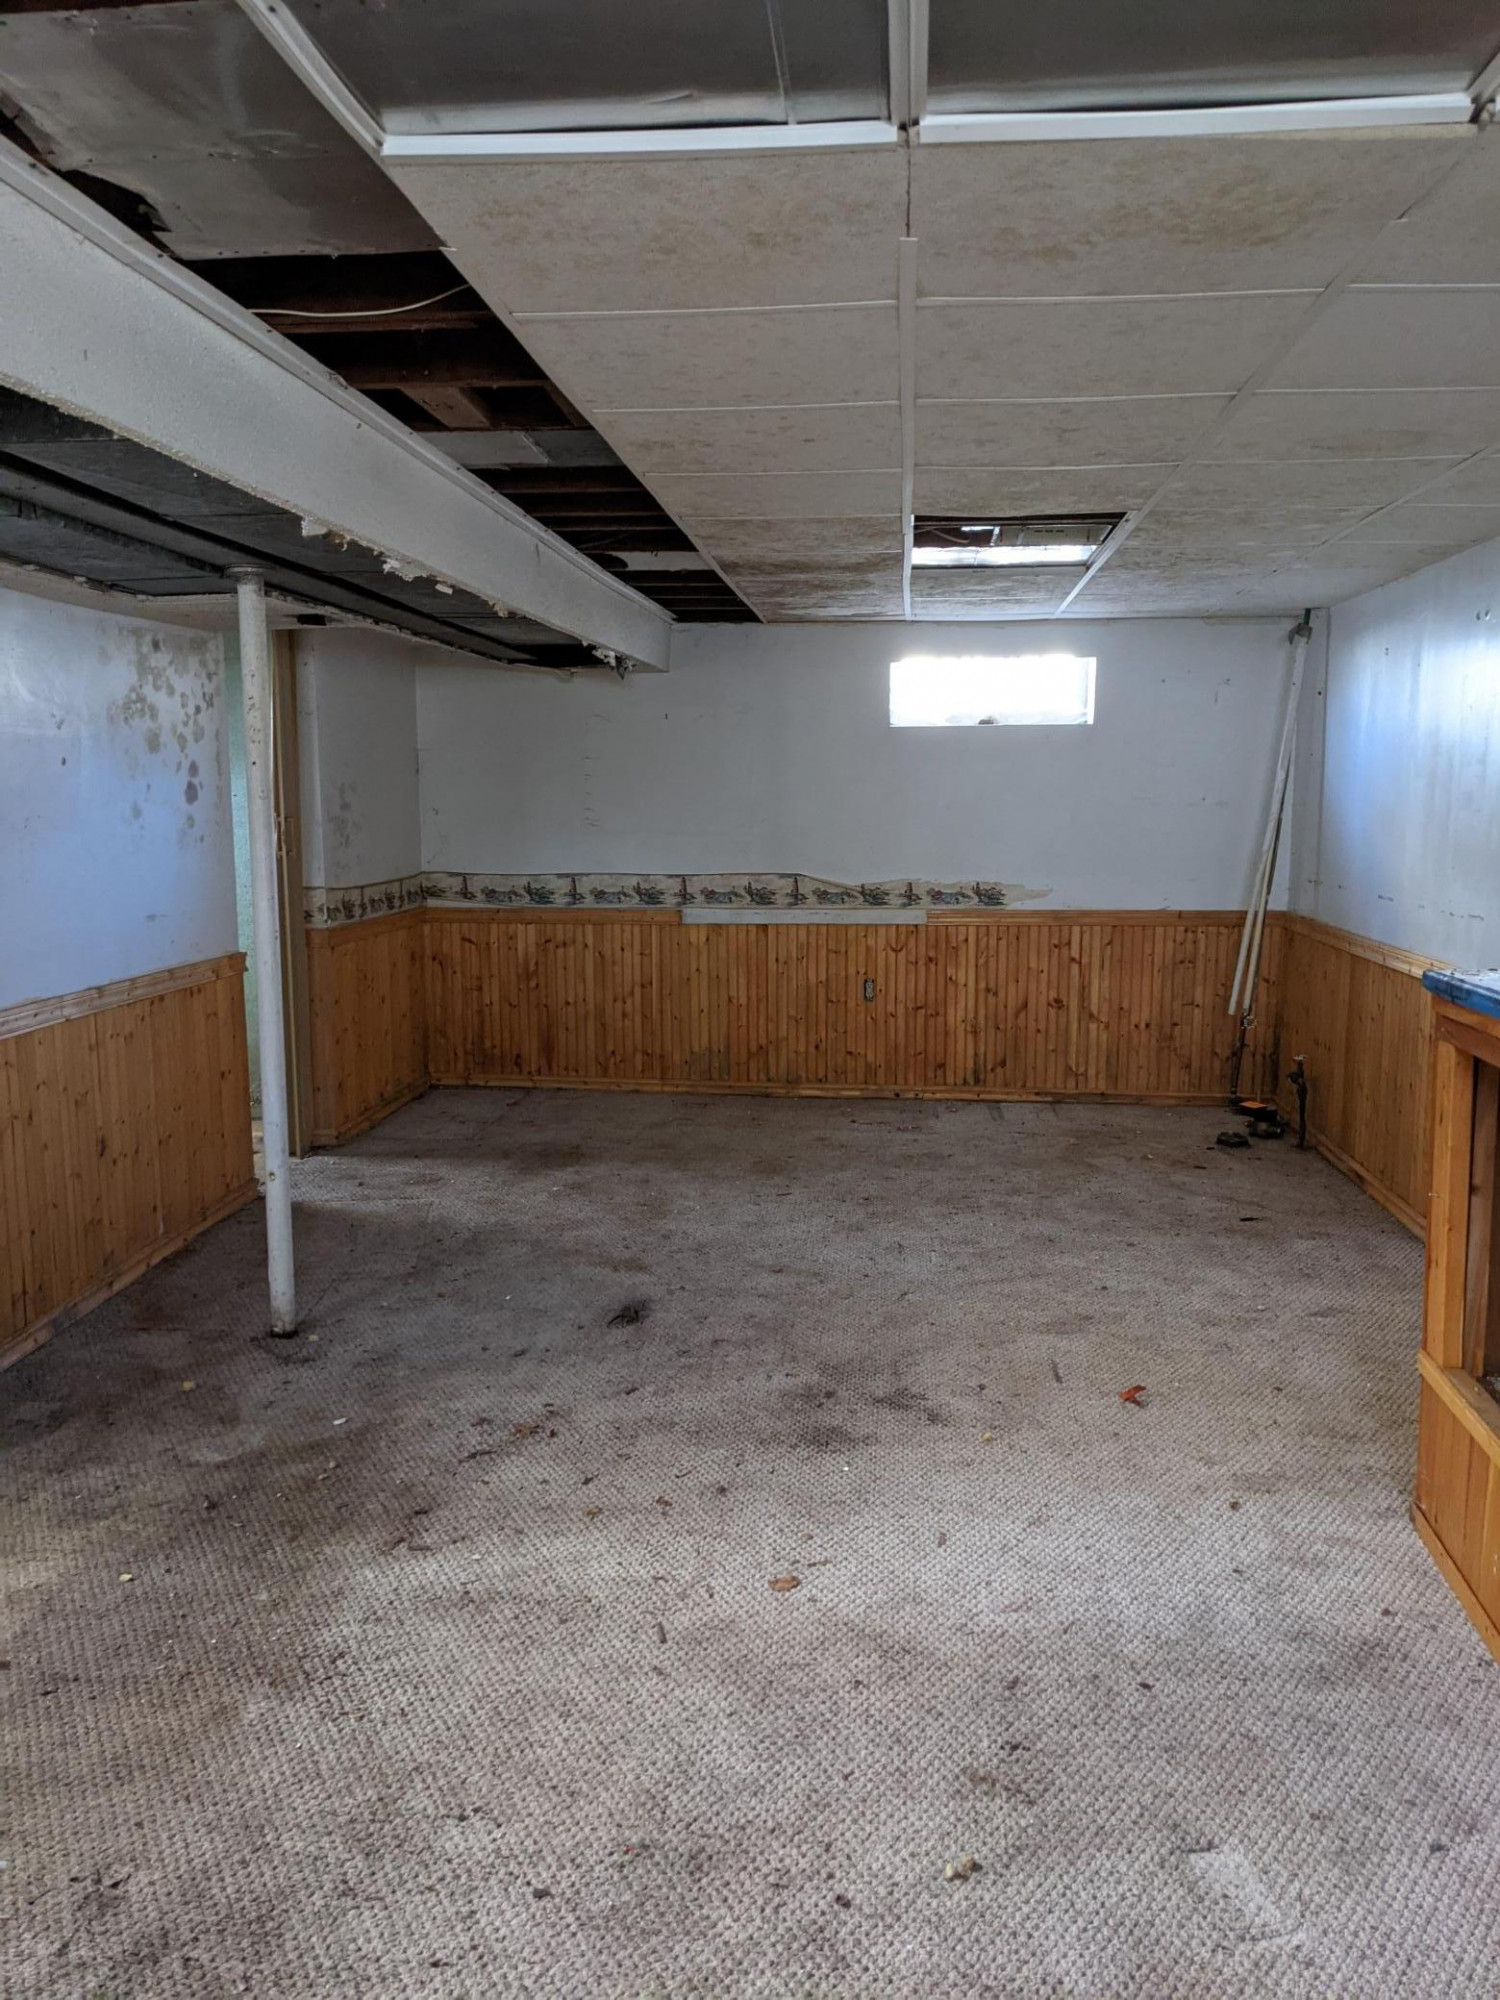 Basement has a large open area ready for remodel to a family room